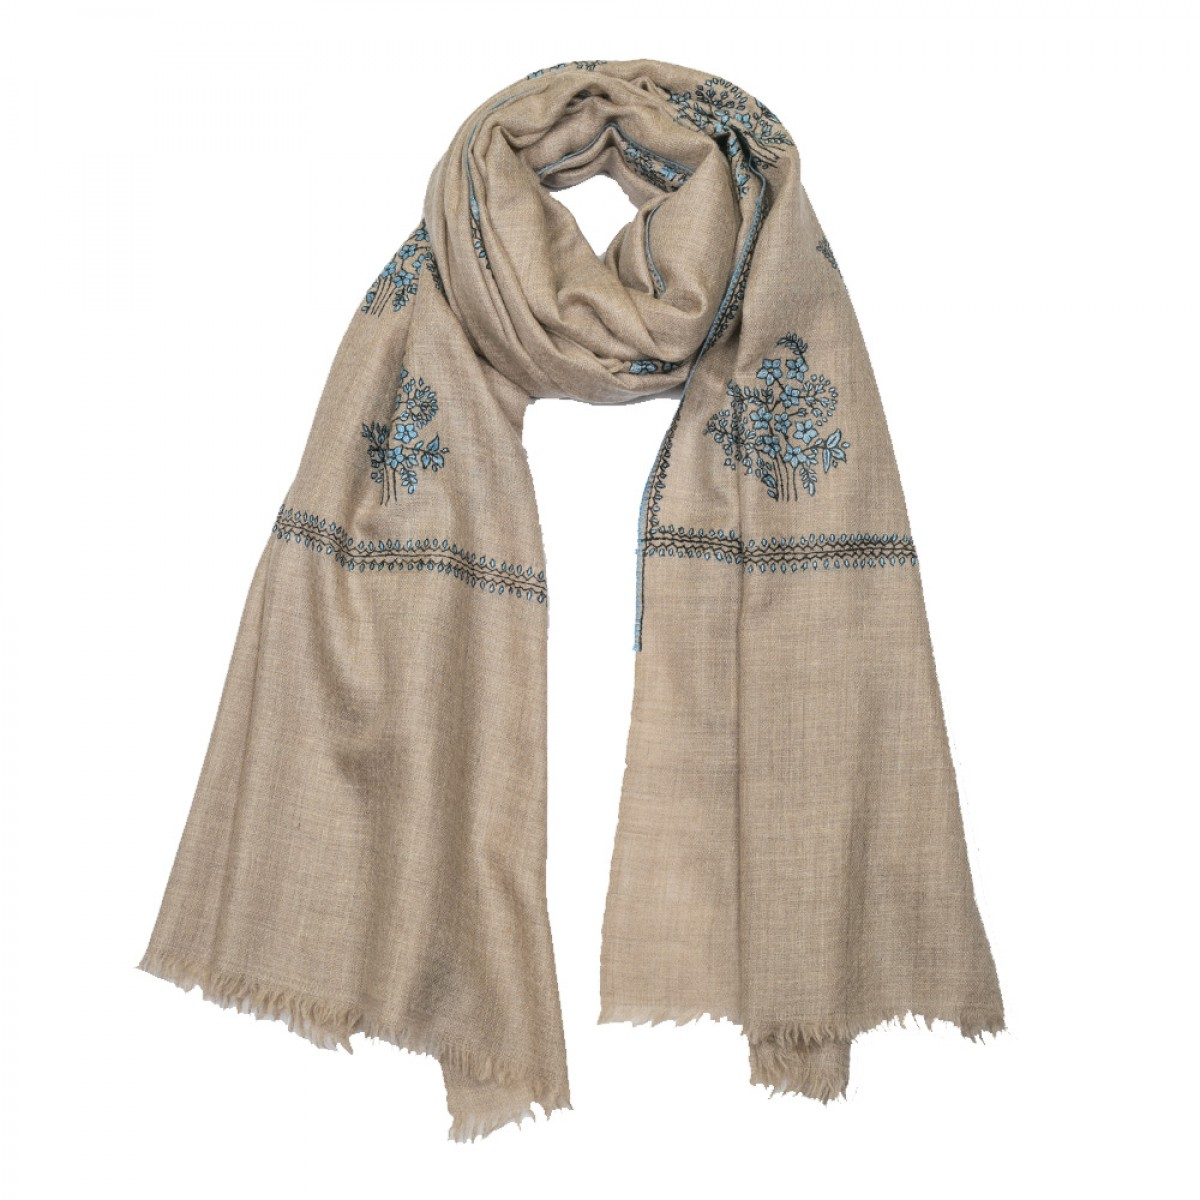 Embroidered Pashmina stole - Natural & Sky Blue